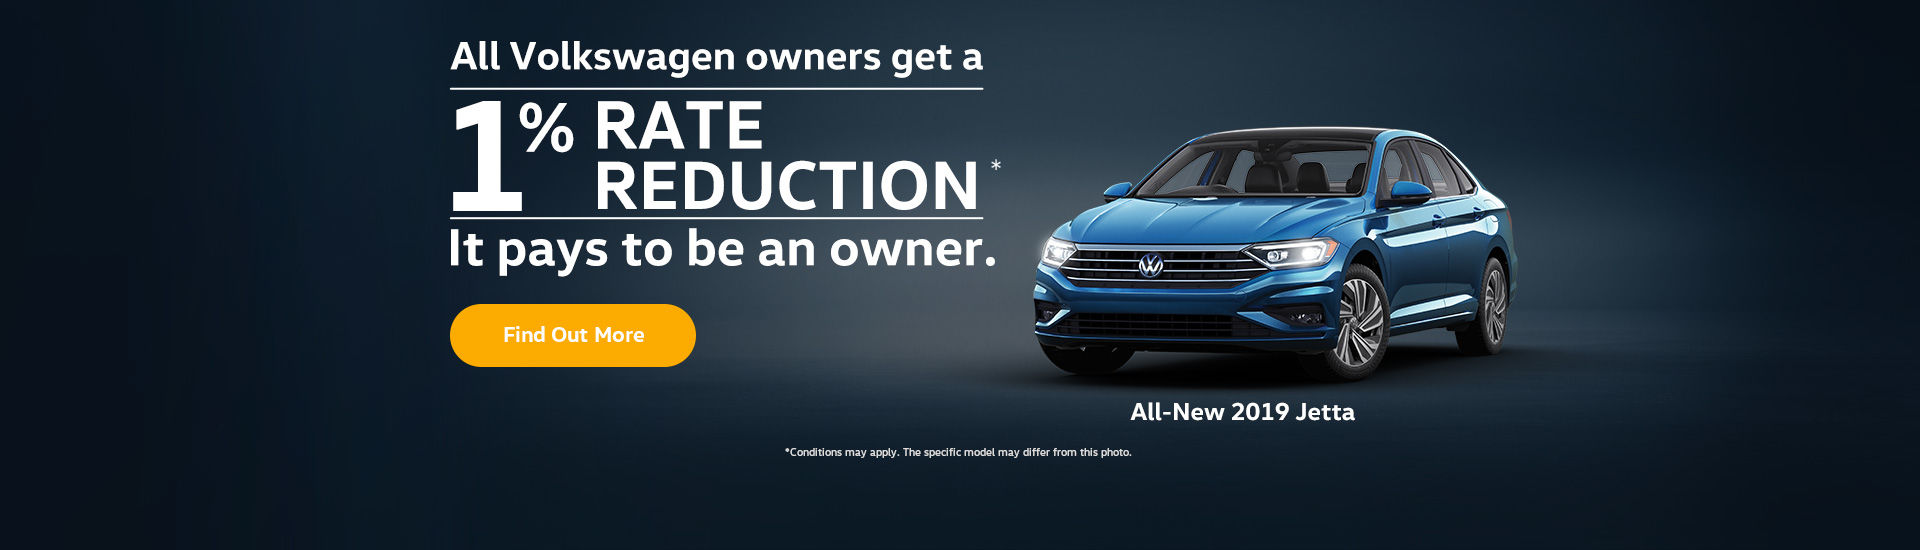 Jetta 1% rate reduction